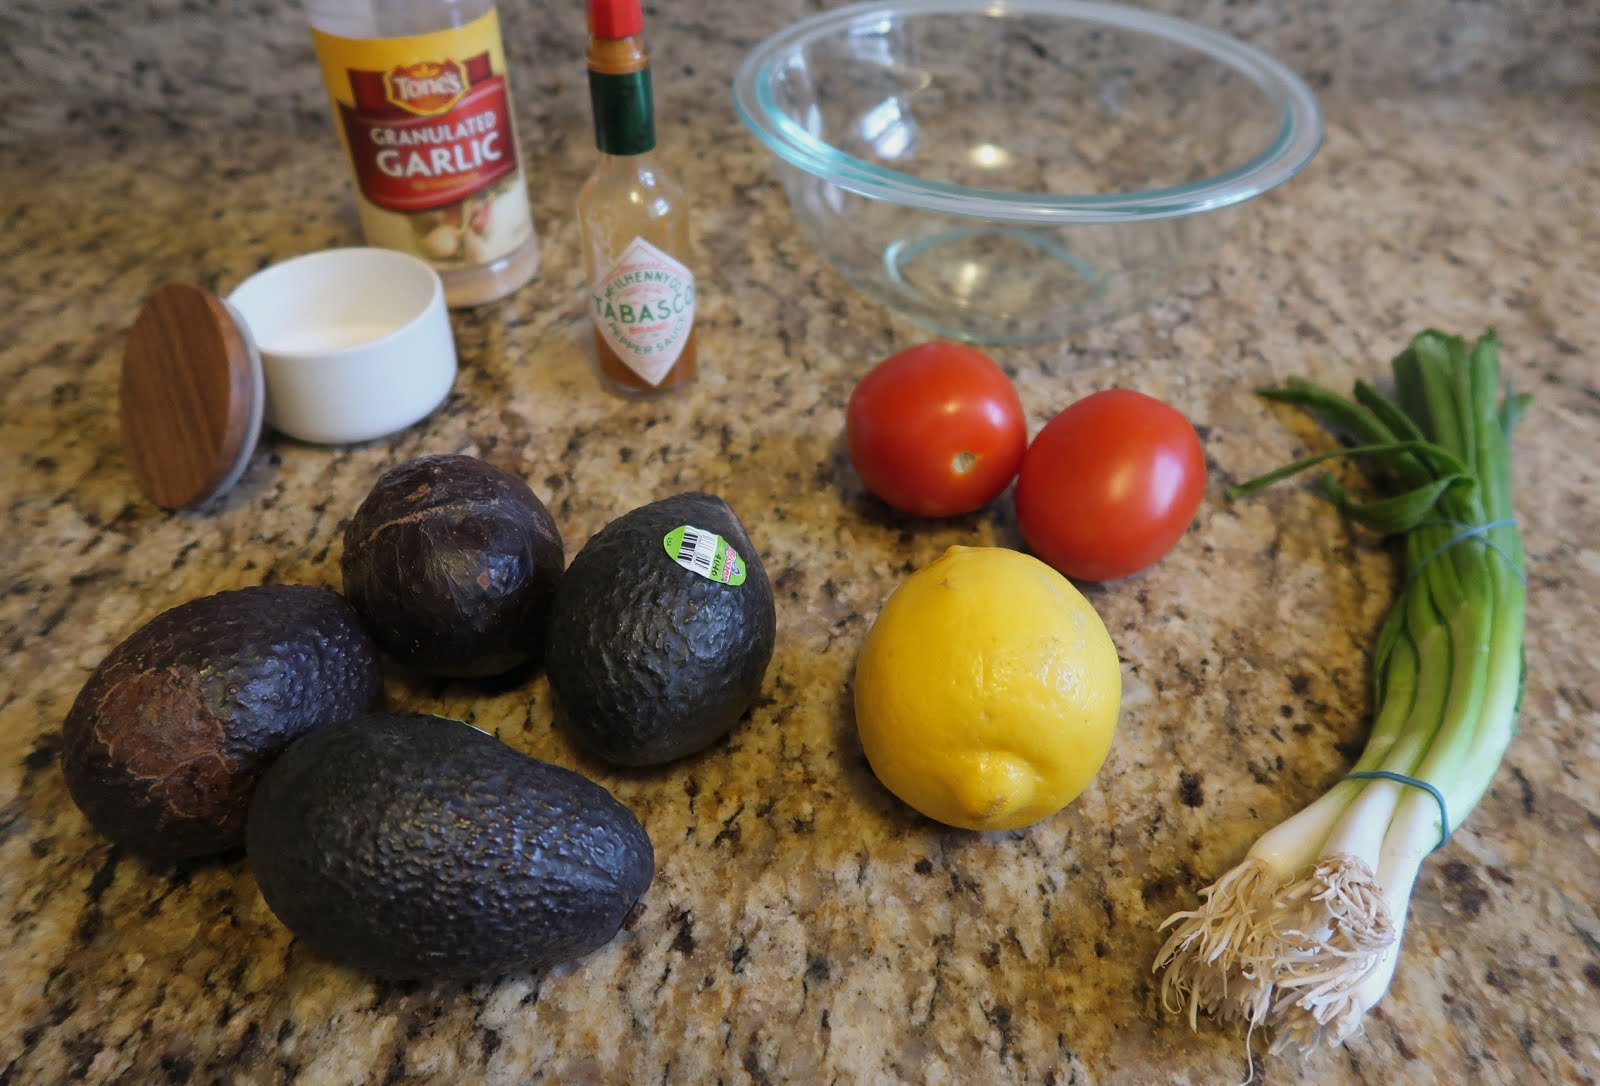 guacamole ingredients recipe avocado lemon tomato green onion salt tabasco garlic bowl